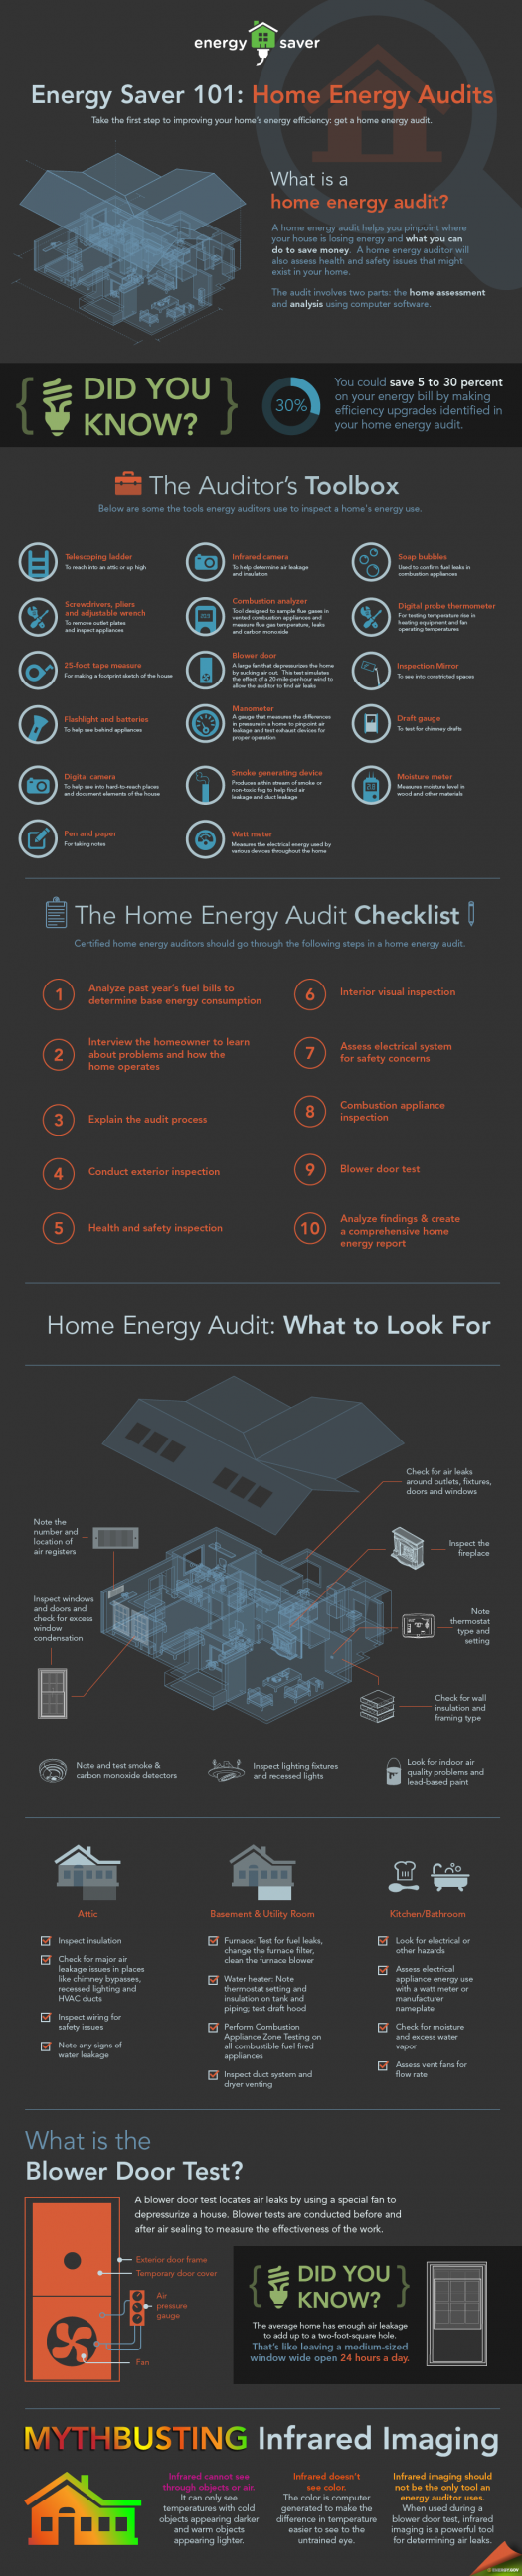 Energy Saver 101 Infographic Home Energy Audits Department Of Energy